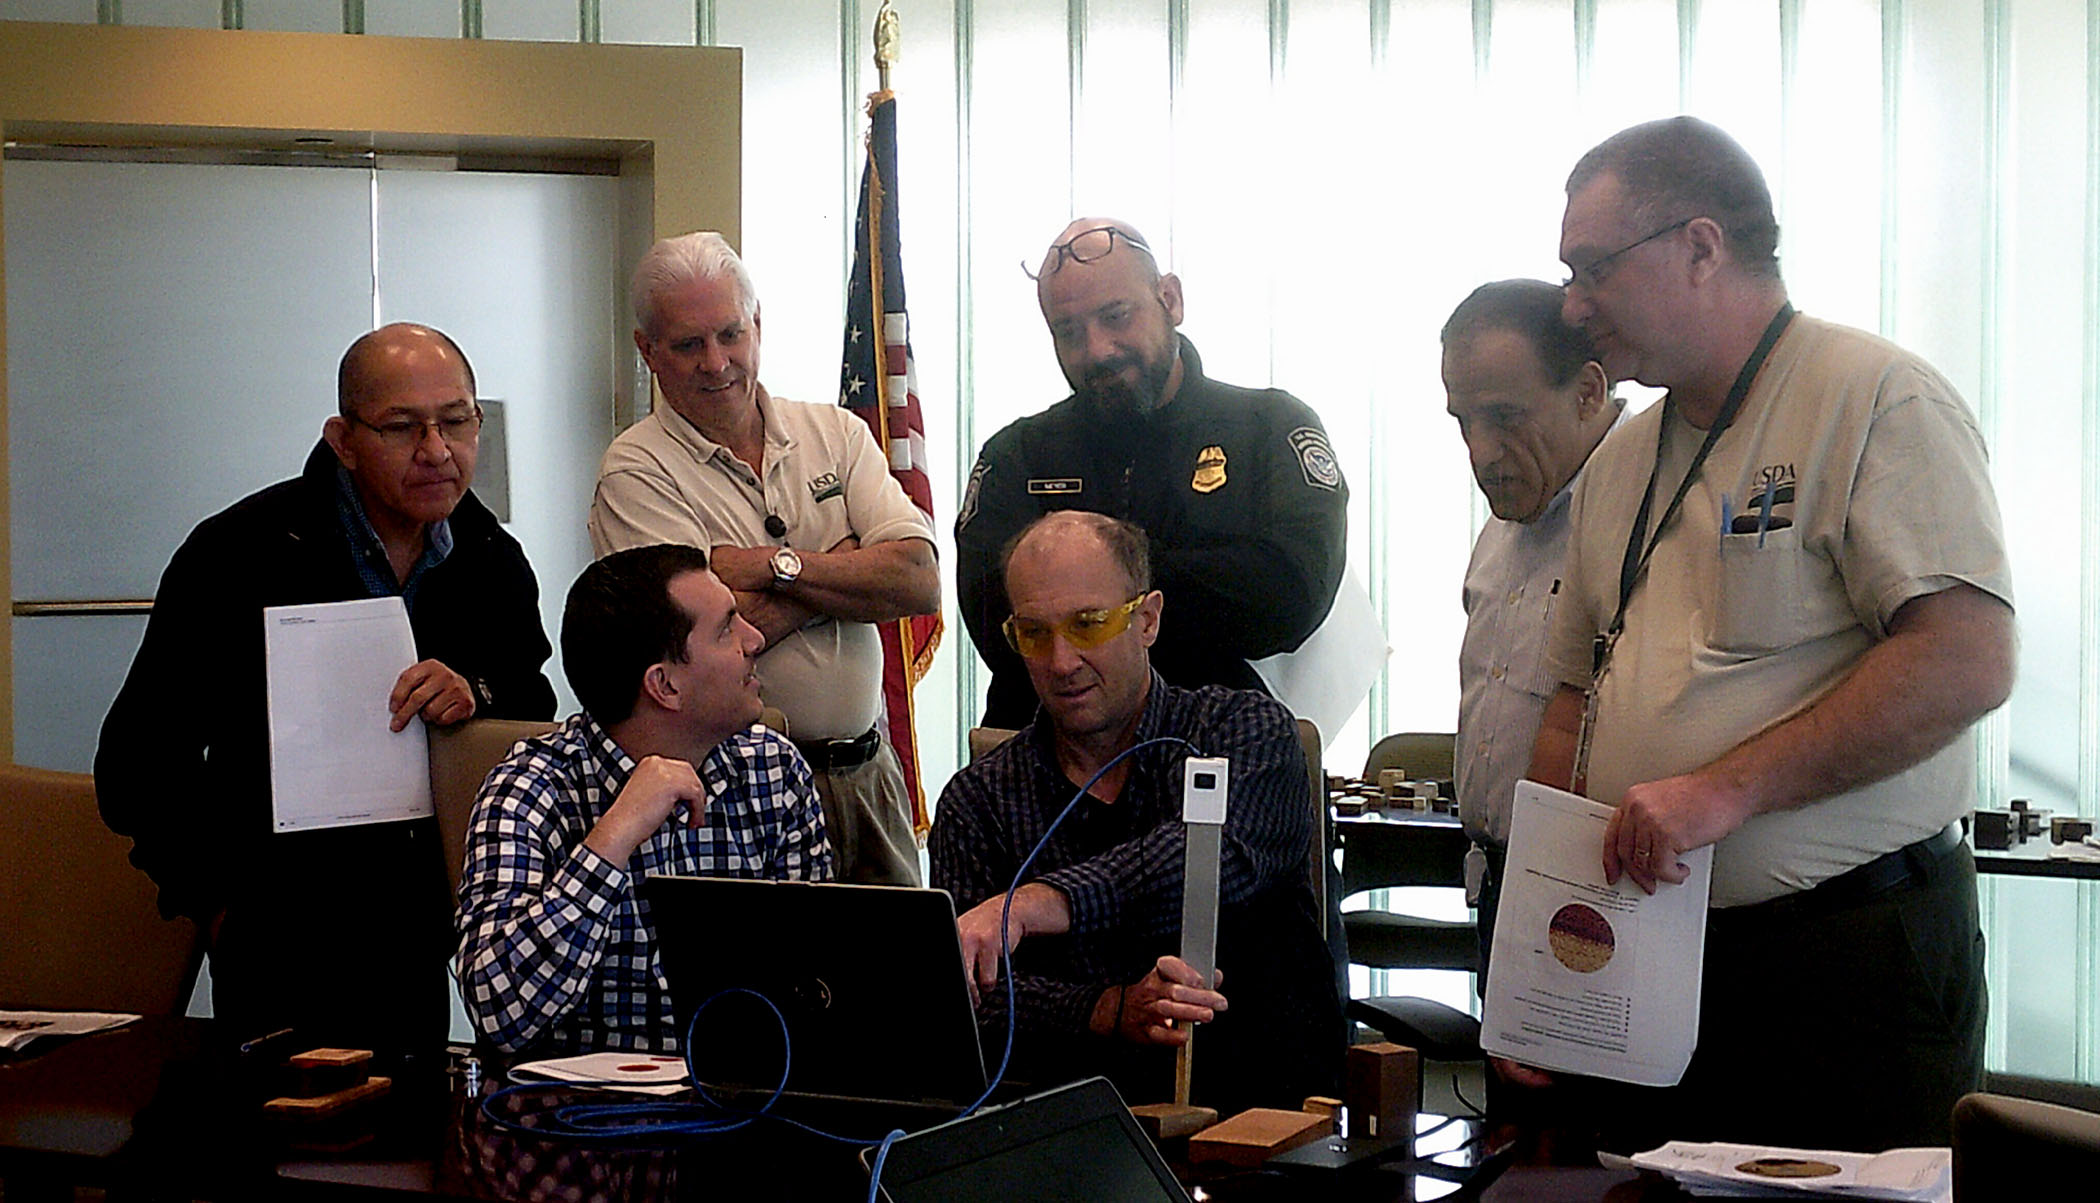 Photo: Group of men gather around one who is demonstrating use of a tool to identify wood. They look over his shoulder as he points to something on a laptop screen.